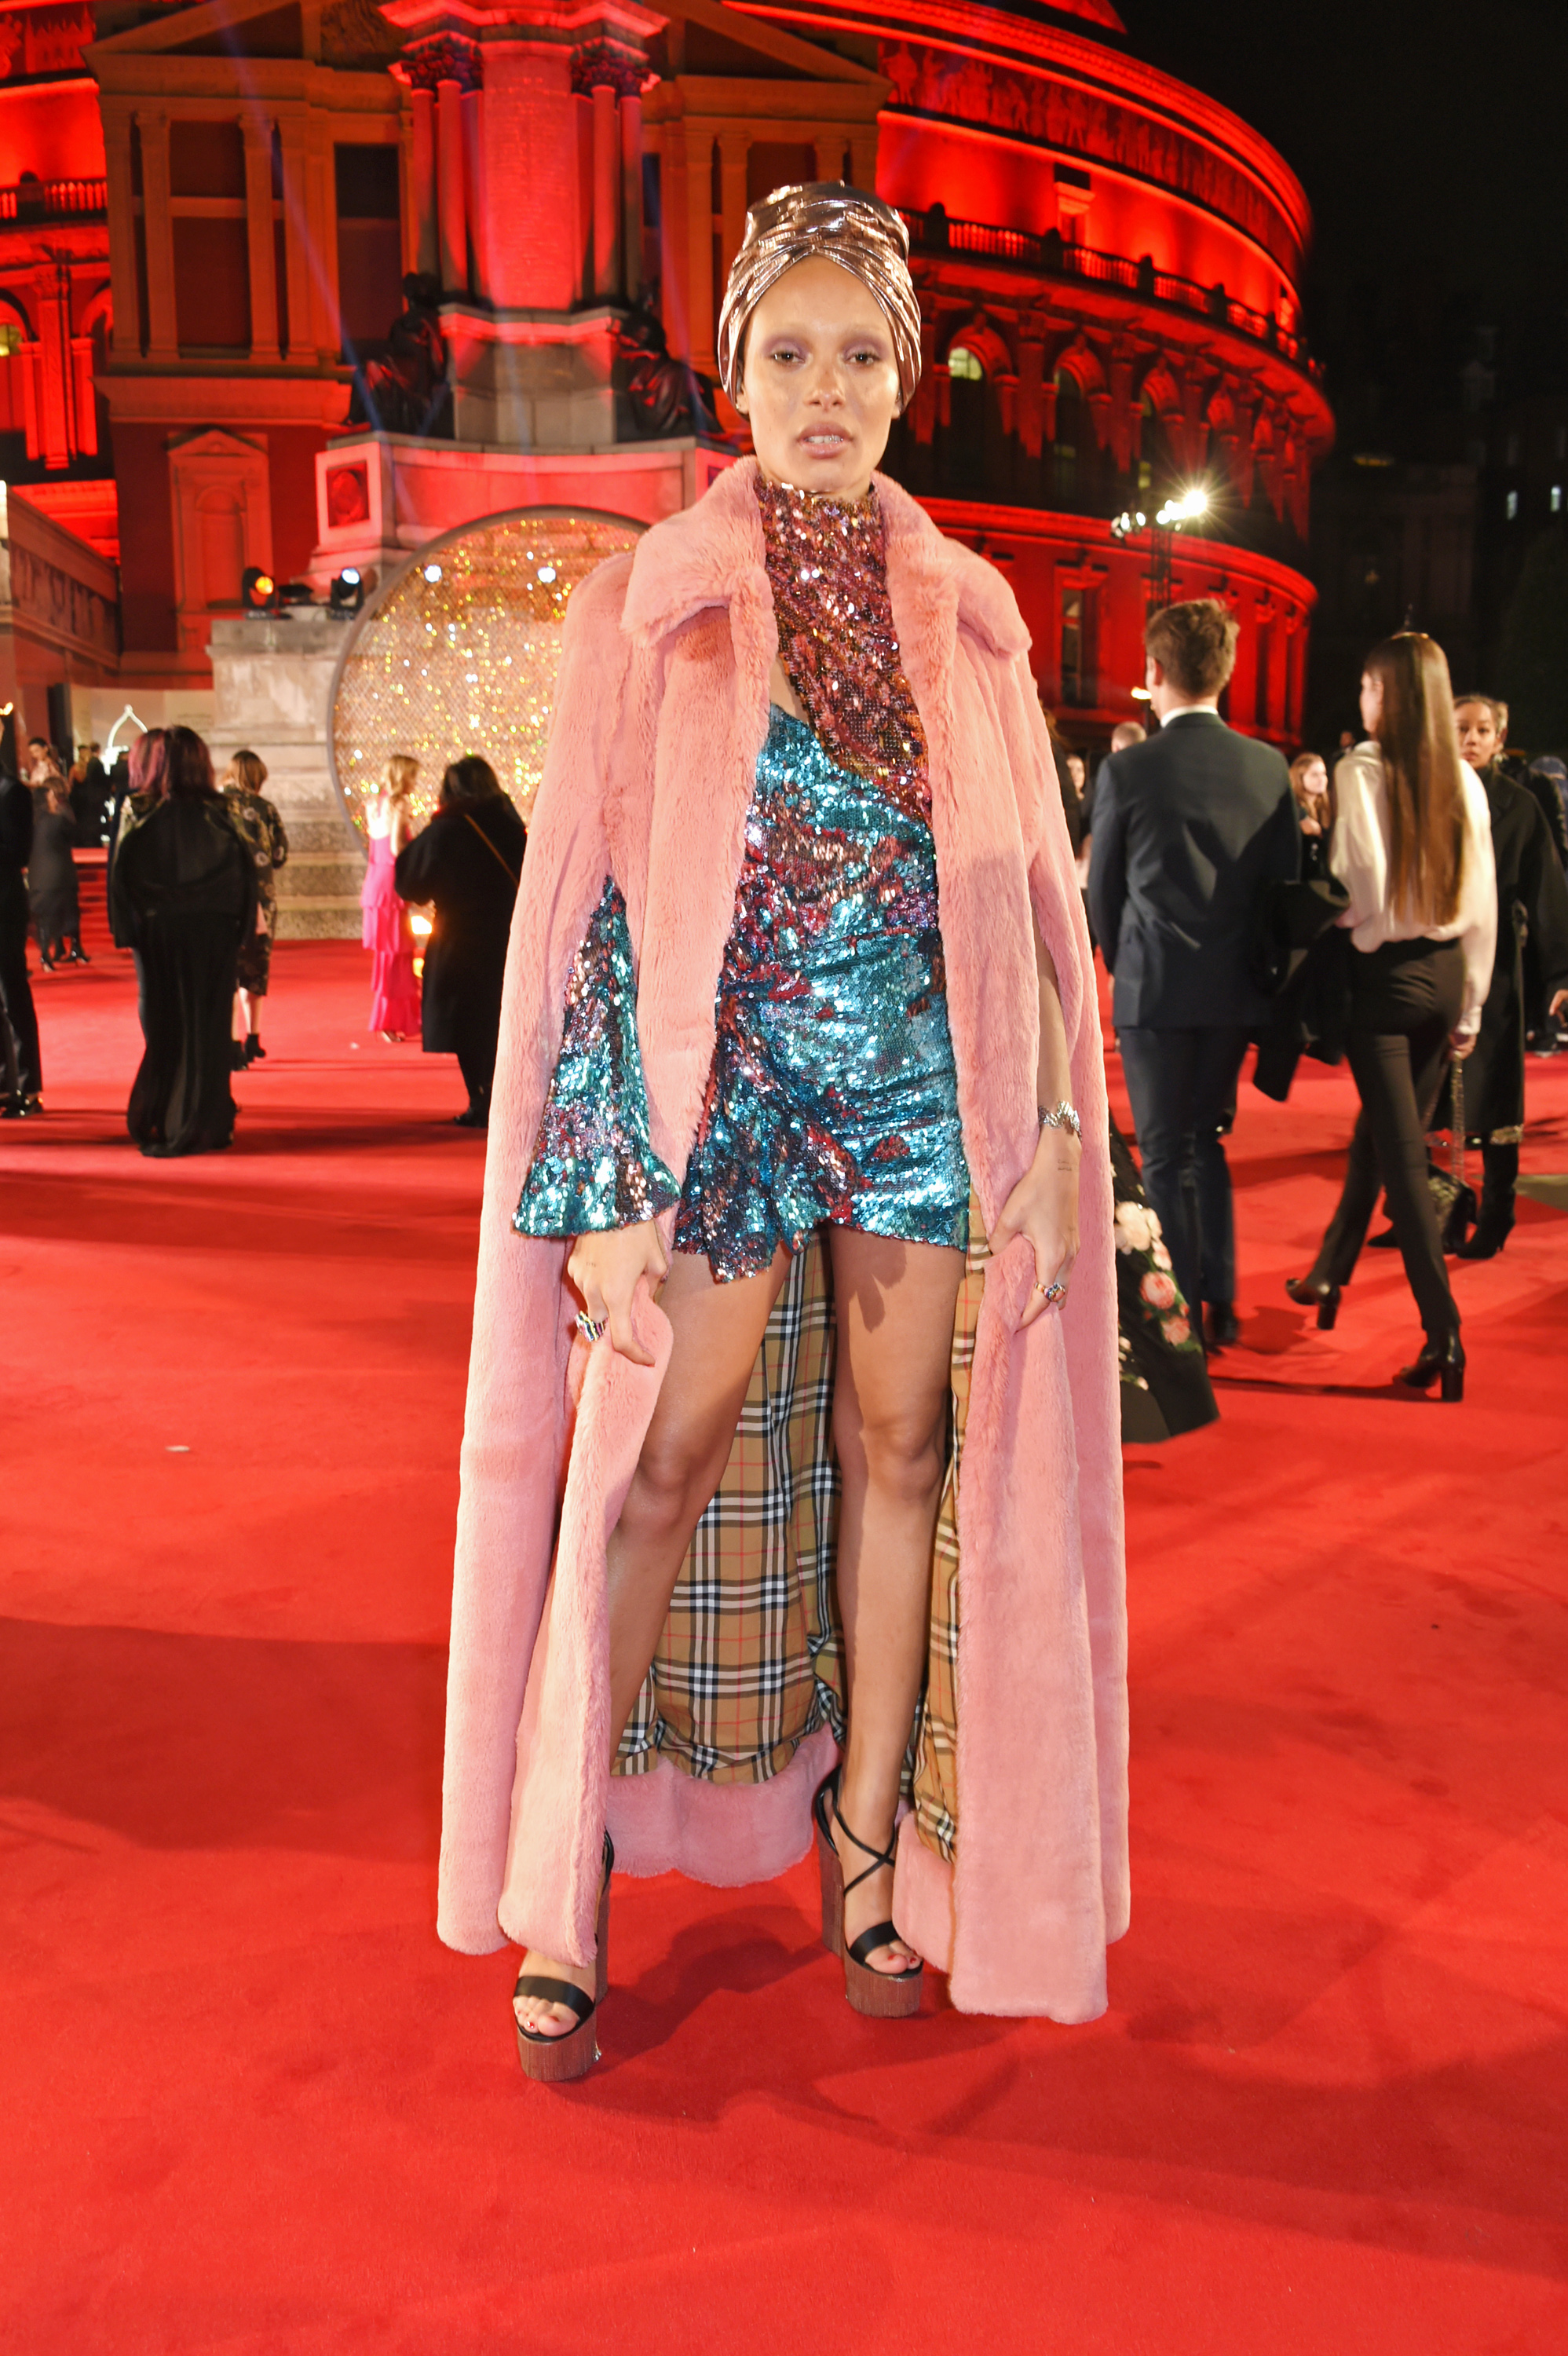 LONDON, ENGLAND - DECEMBER 04:  Adwoa Aboah attends The Fashion Awards 2017 in partnership with Swarovski at Royal Albert Hall on December 4, 2017 in London, England.  (Photo by David M. Benett/Dave Benett/Getty Images)